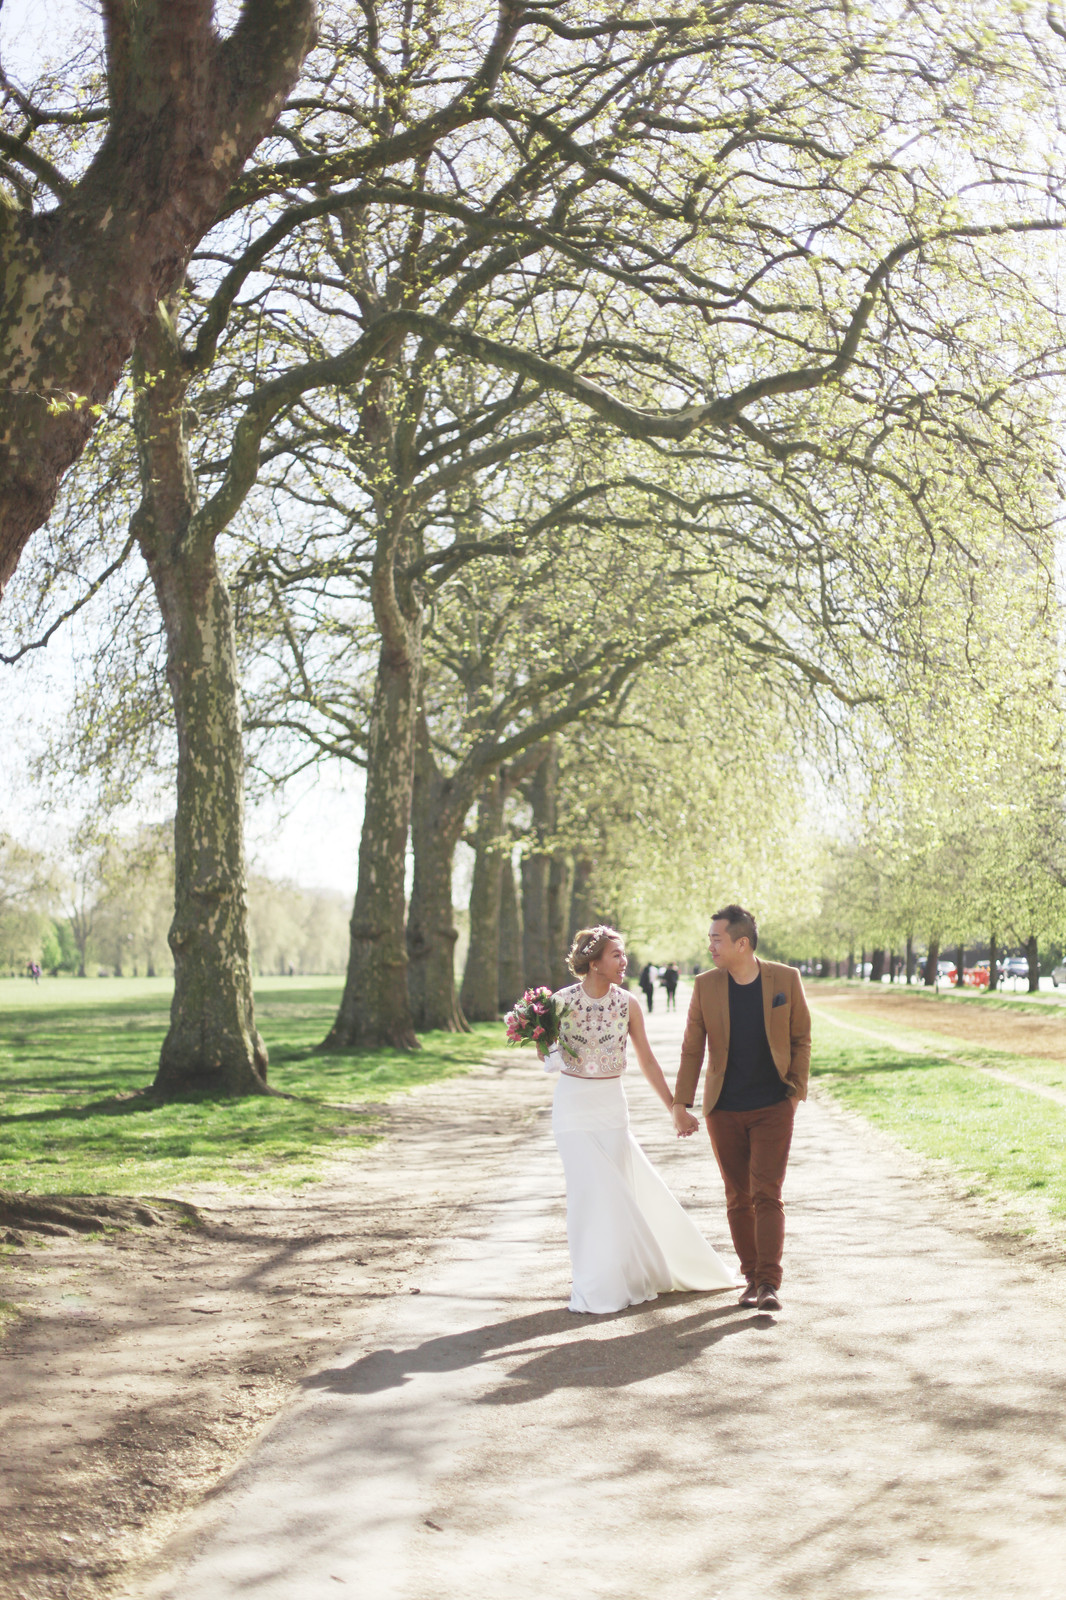 Thanks For Stopping By London Pre Wedding Photography Page If You Are Looking A Photographer In Then Re The Right Place